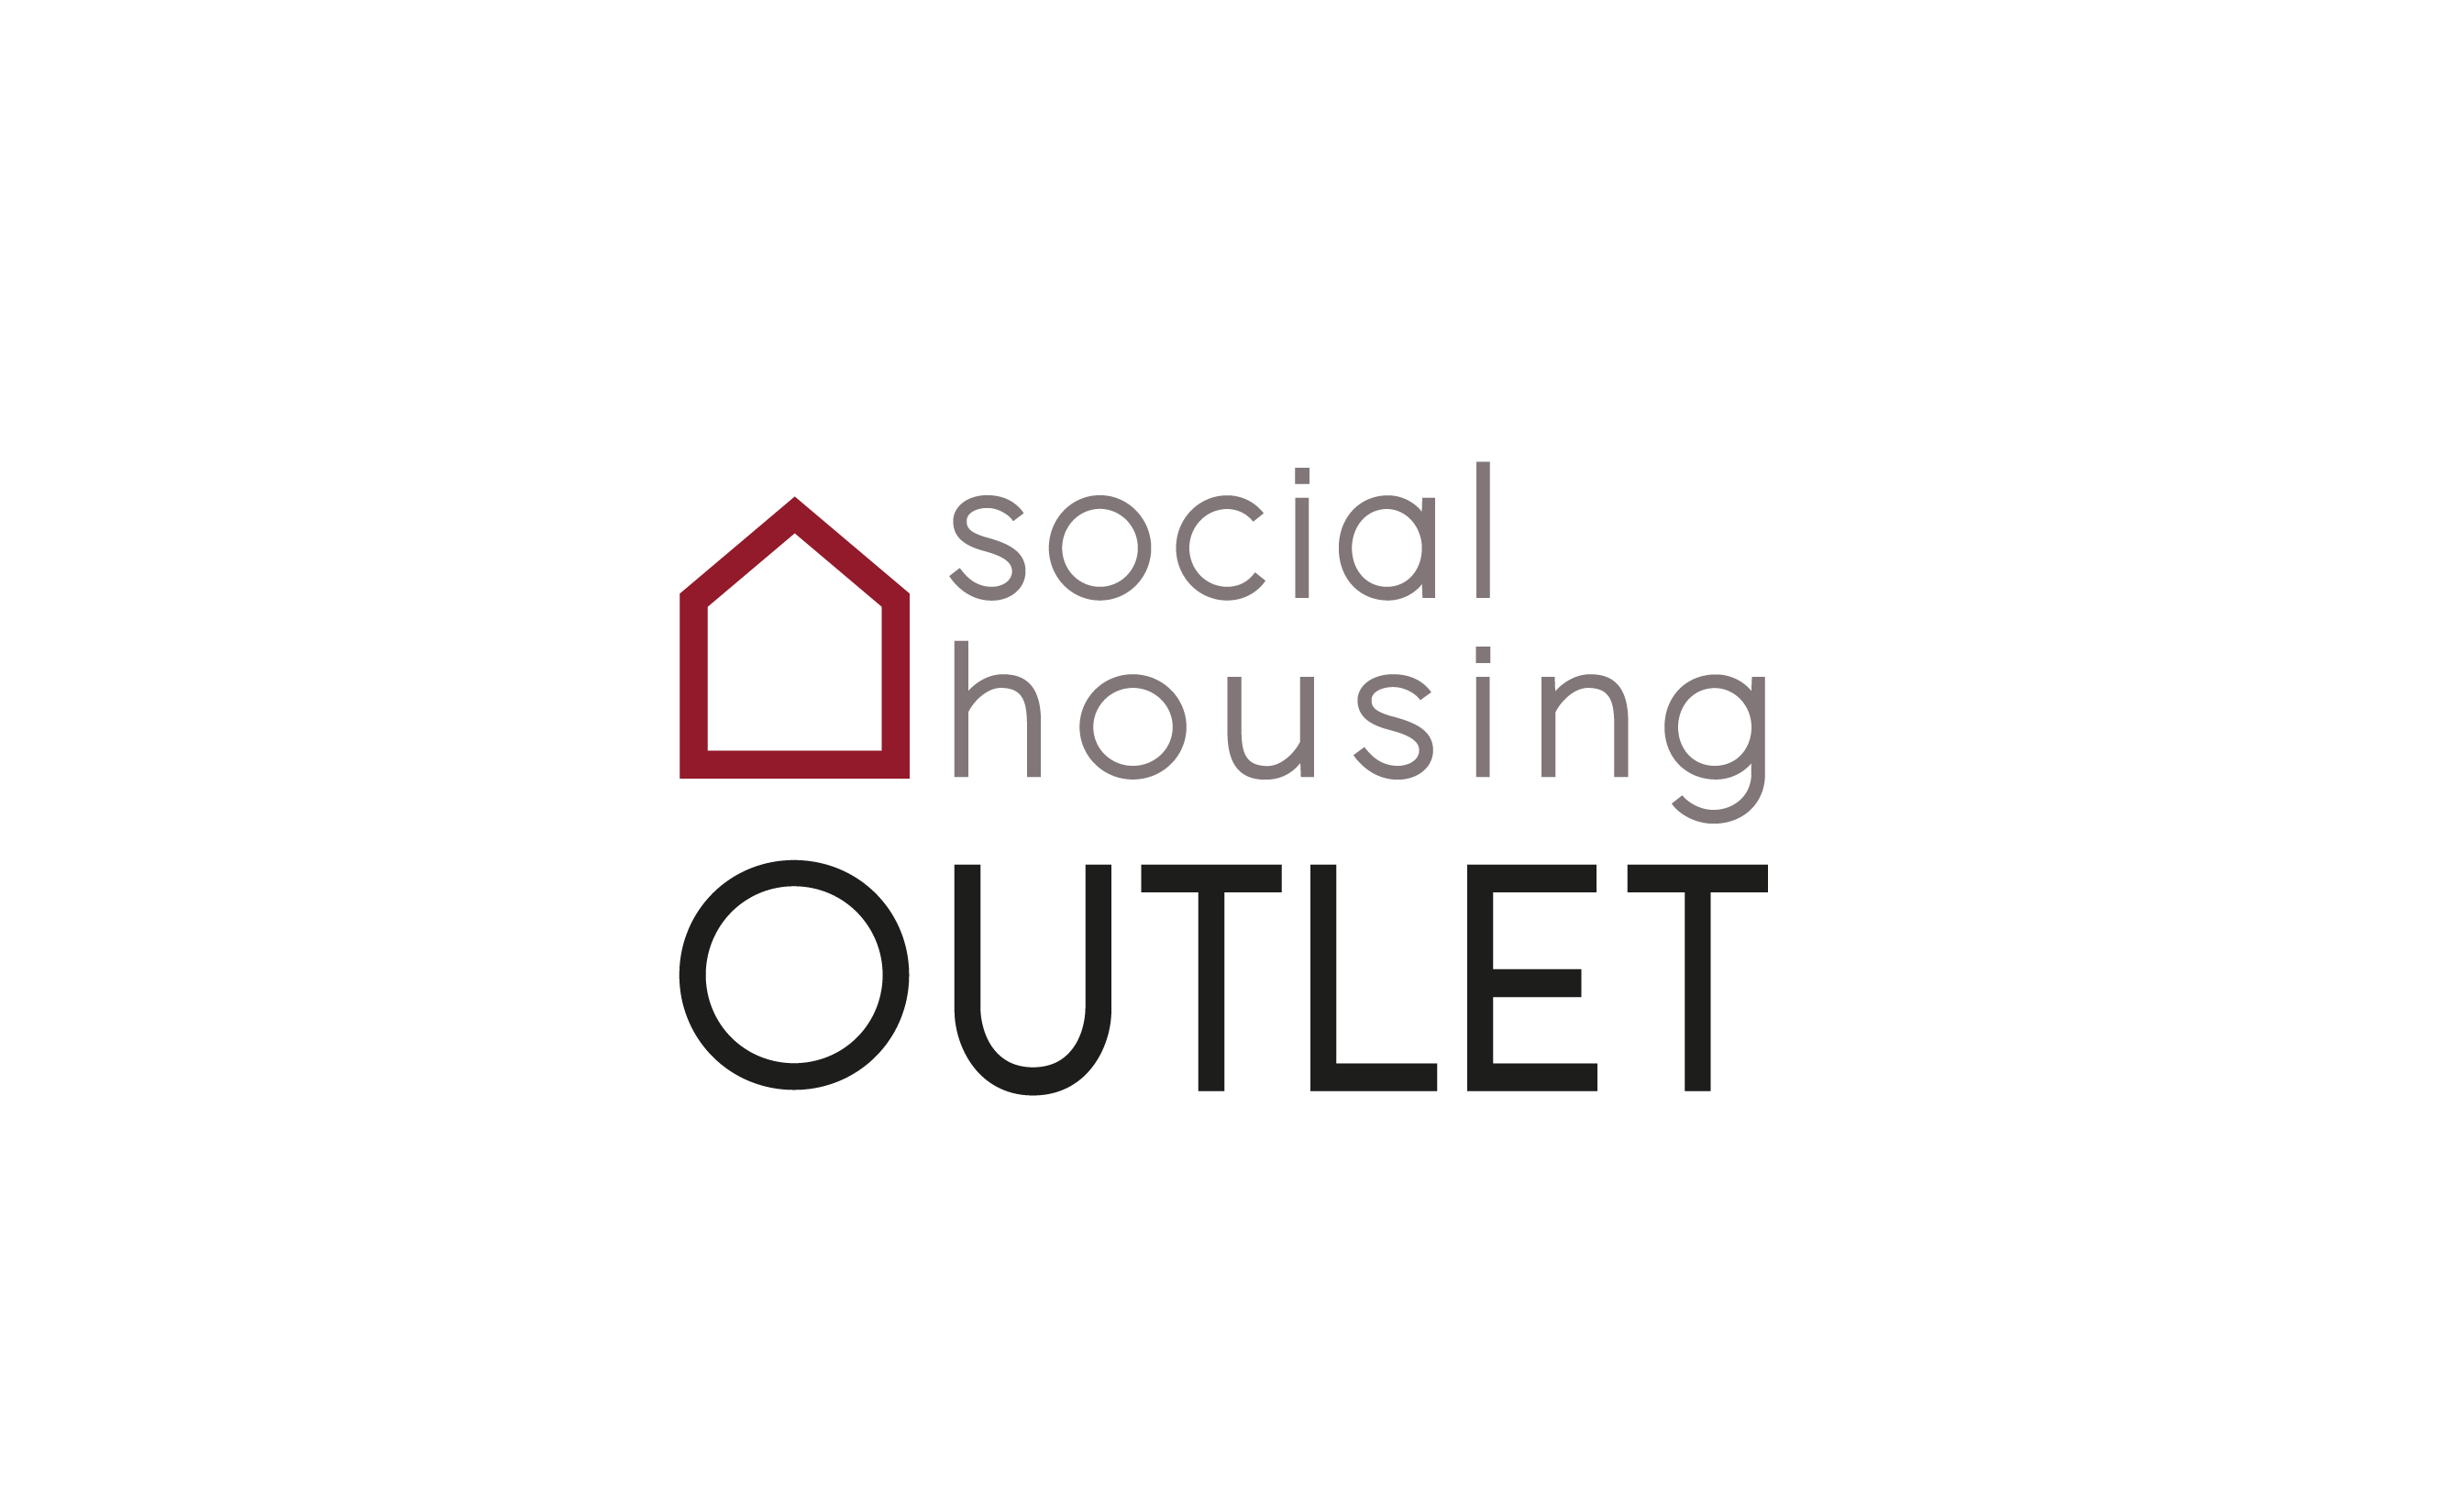 Social Housing Outlet